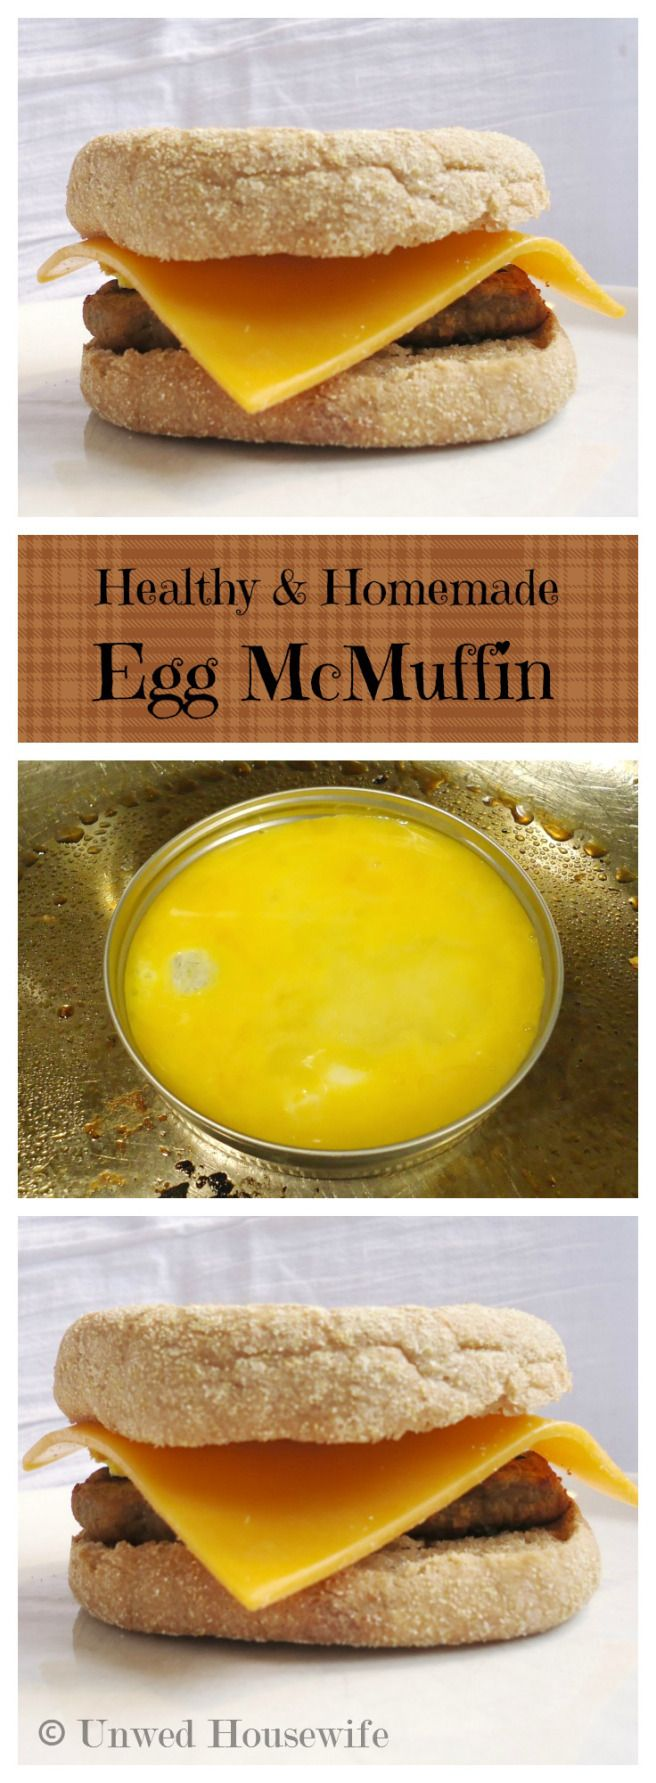 Healthy and Homemade Egg McMuffin | Unwed Housewife | A delicious breakfast sandwich that is less than 500 calories. Turkey sausage, egg, and American cheese on a wheat English muffin makes this the perfect breakfast. Learn how to easily cook the egg.